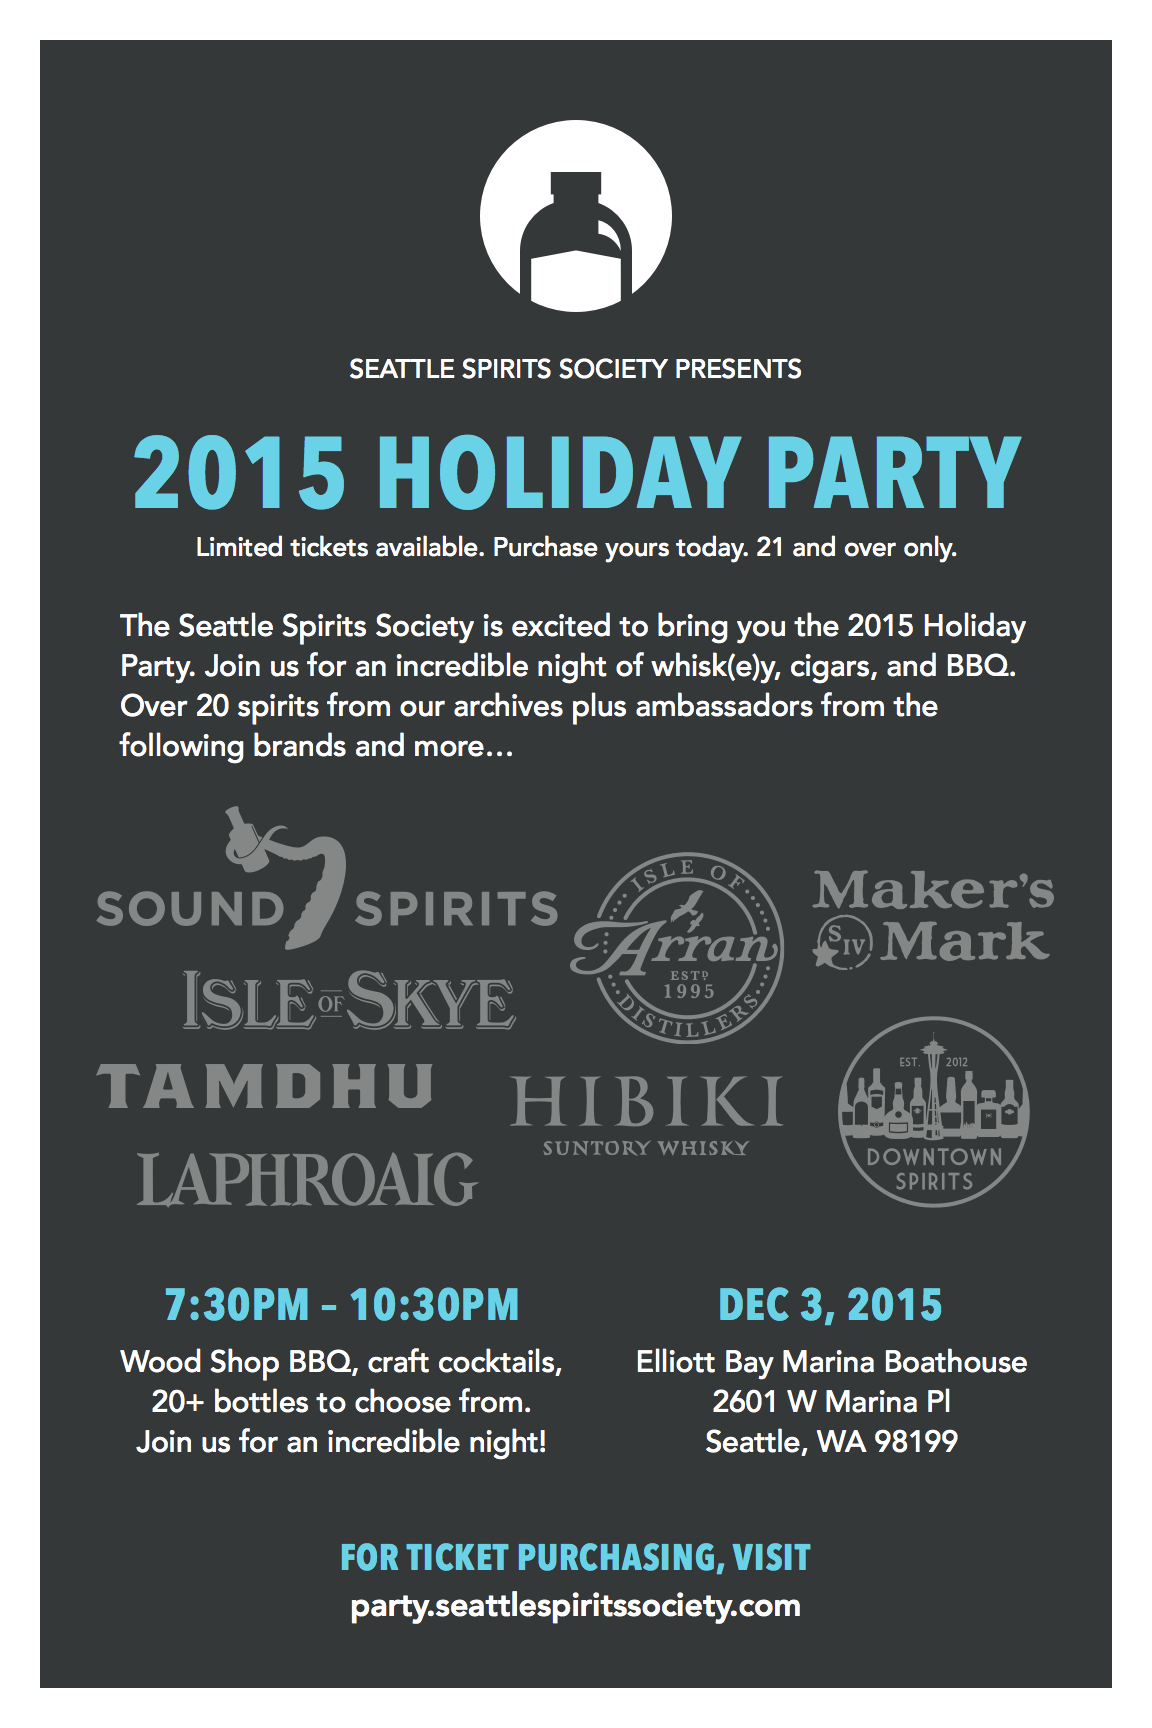 Seattle Spirits Society Holiday Party